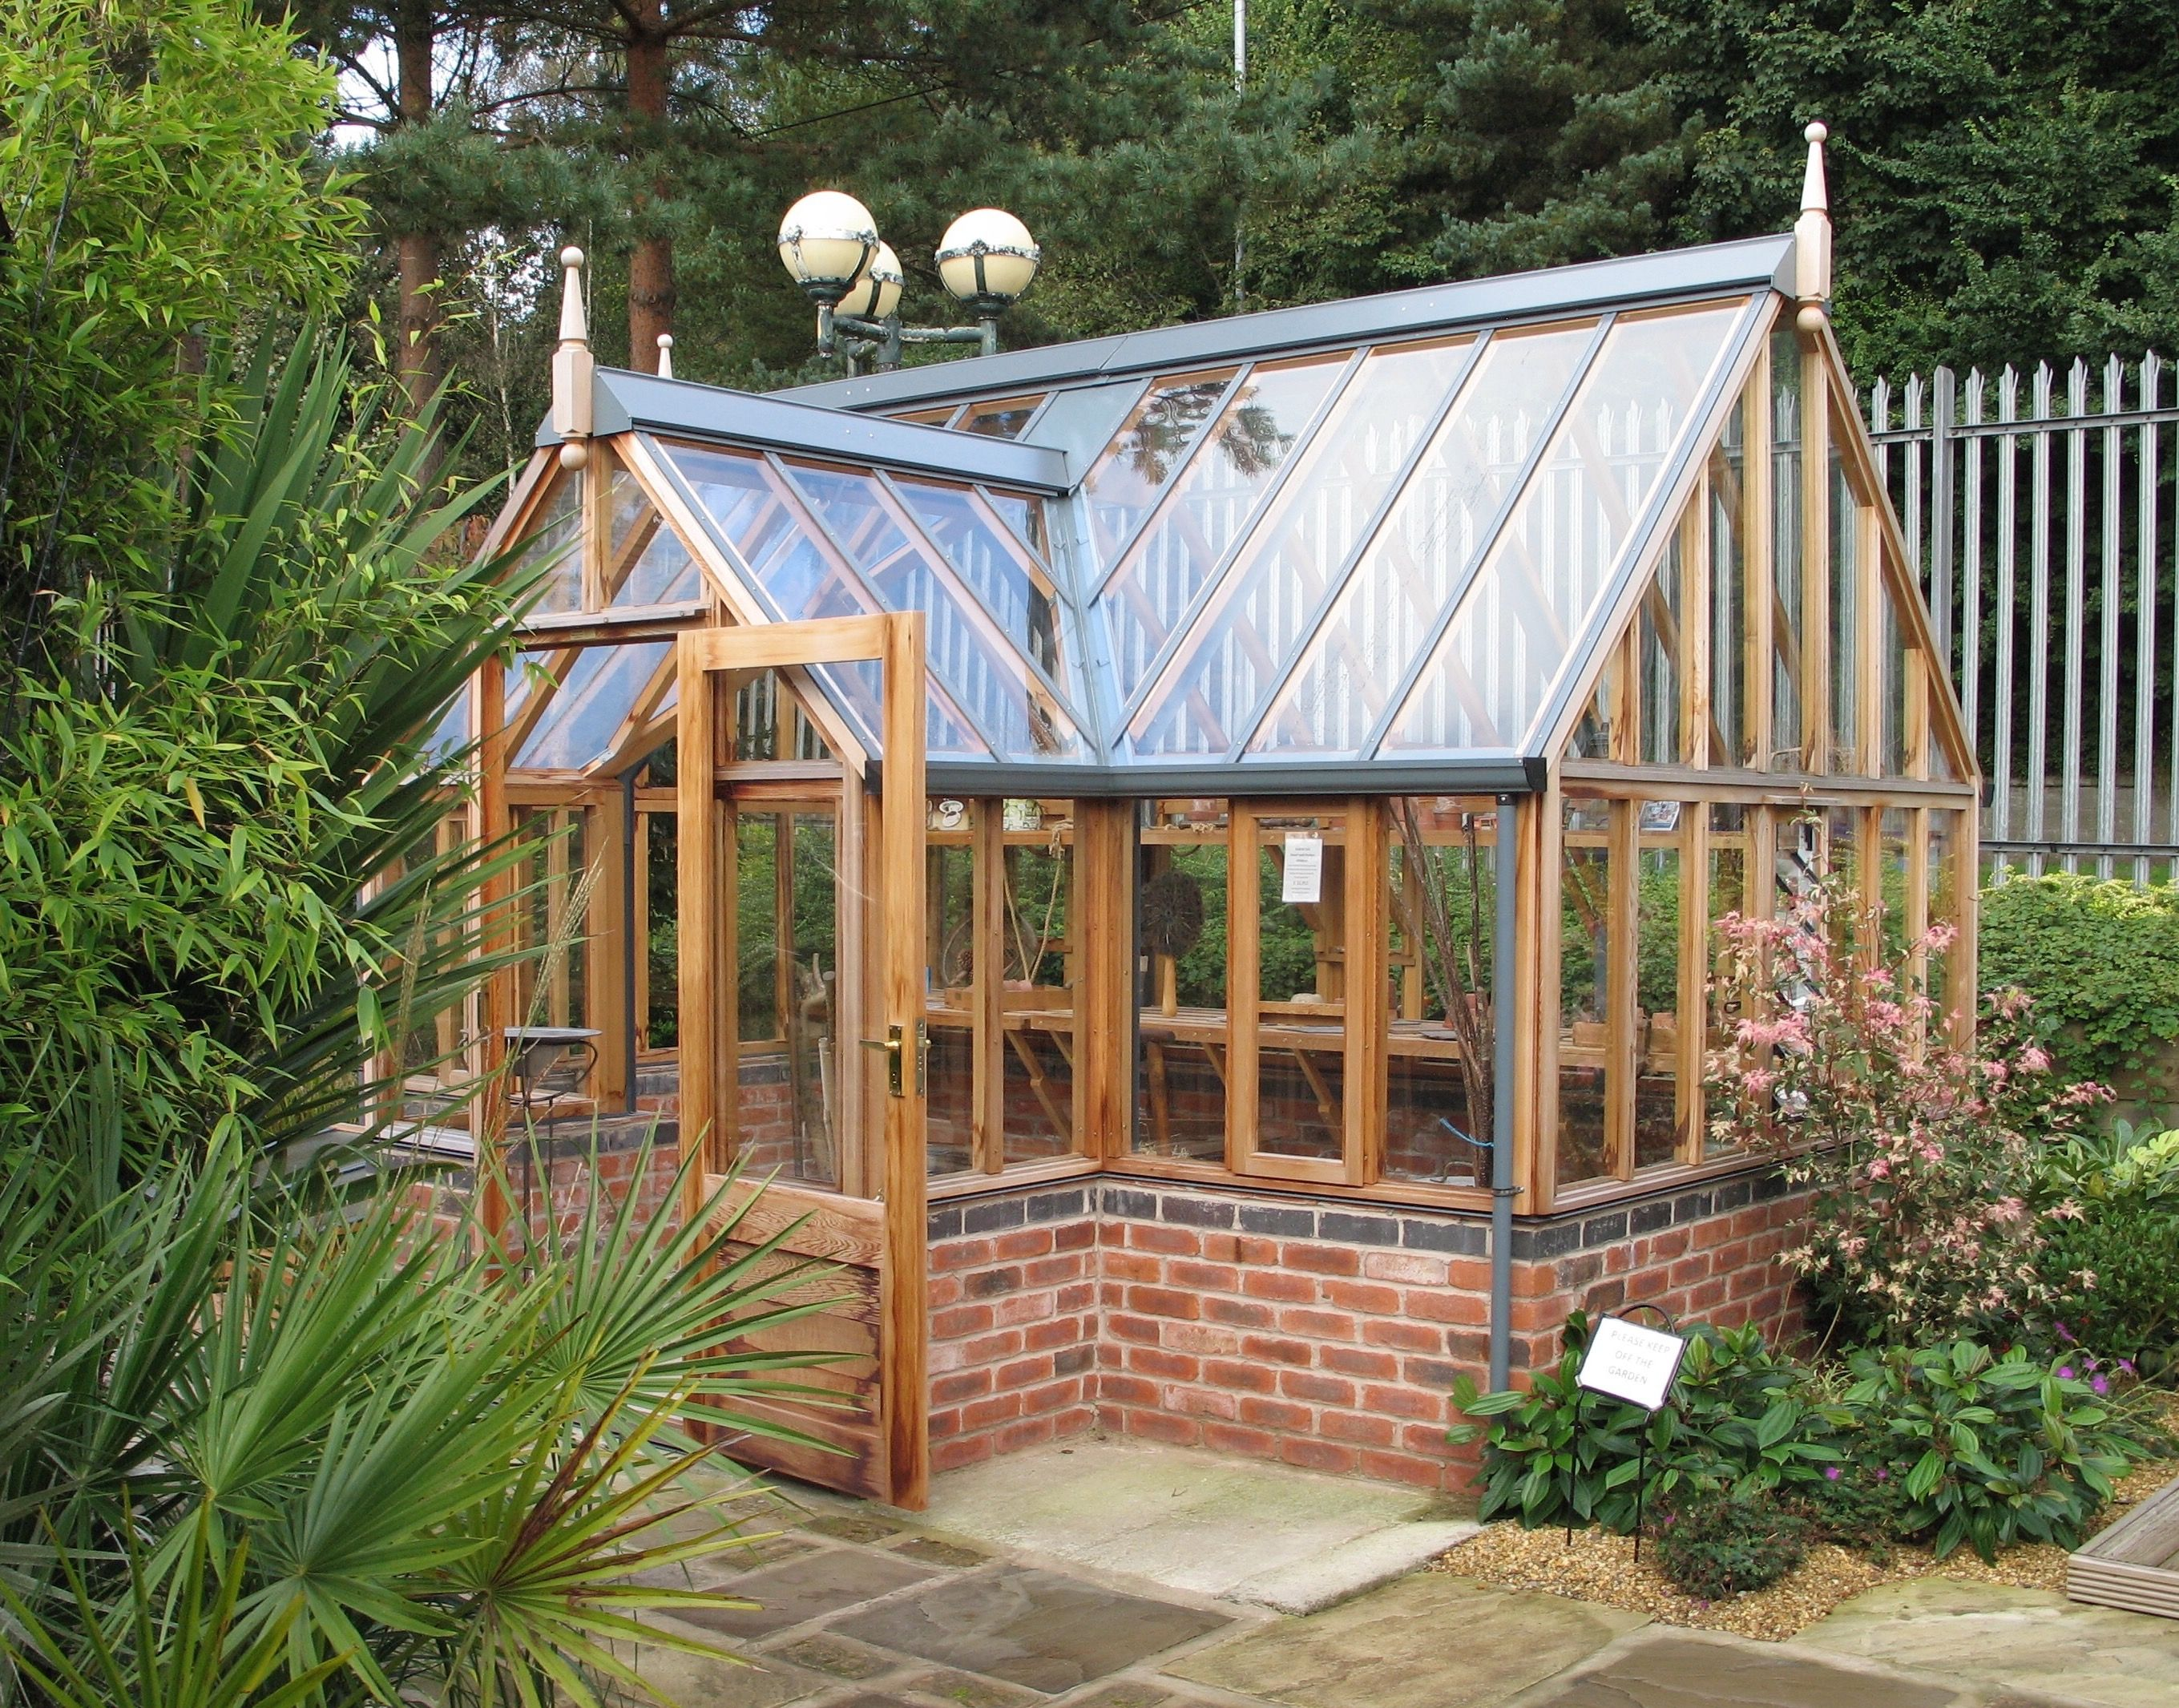 A Gabriel Ash Traditional Victorian Style Timber Greenhouse With Dwarf Brick Wall Order One Now Via Malvern Garde Greenhouse Greenhouse Plans Home Greenhouse